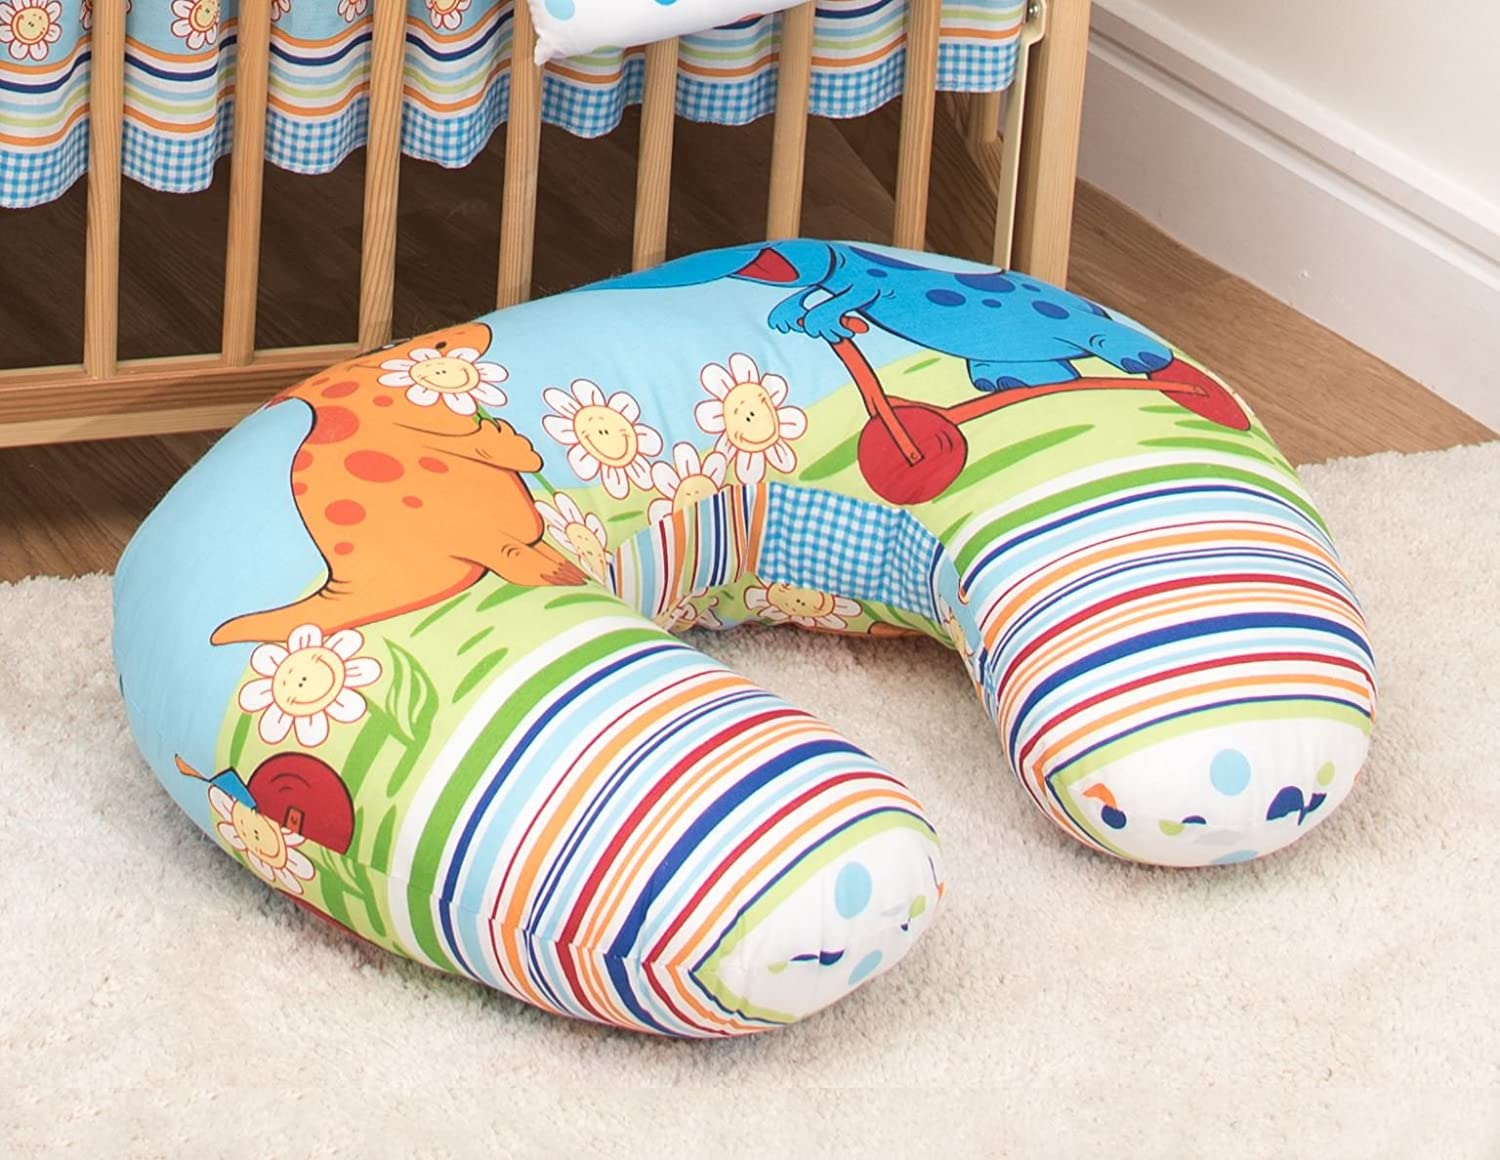 Breastfeeding Pillow/Matternity Back Support Baby Nursing Nest - Pattern 20 Baby Comfort